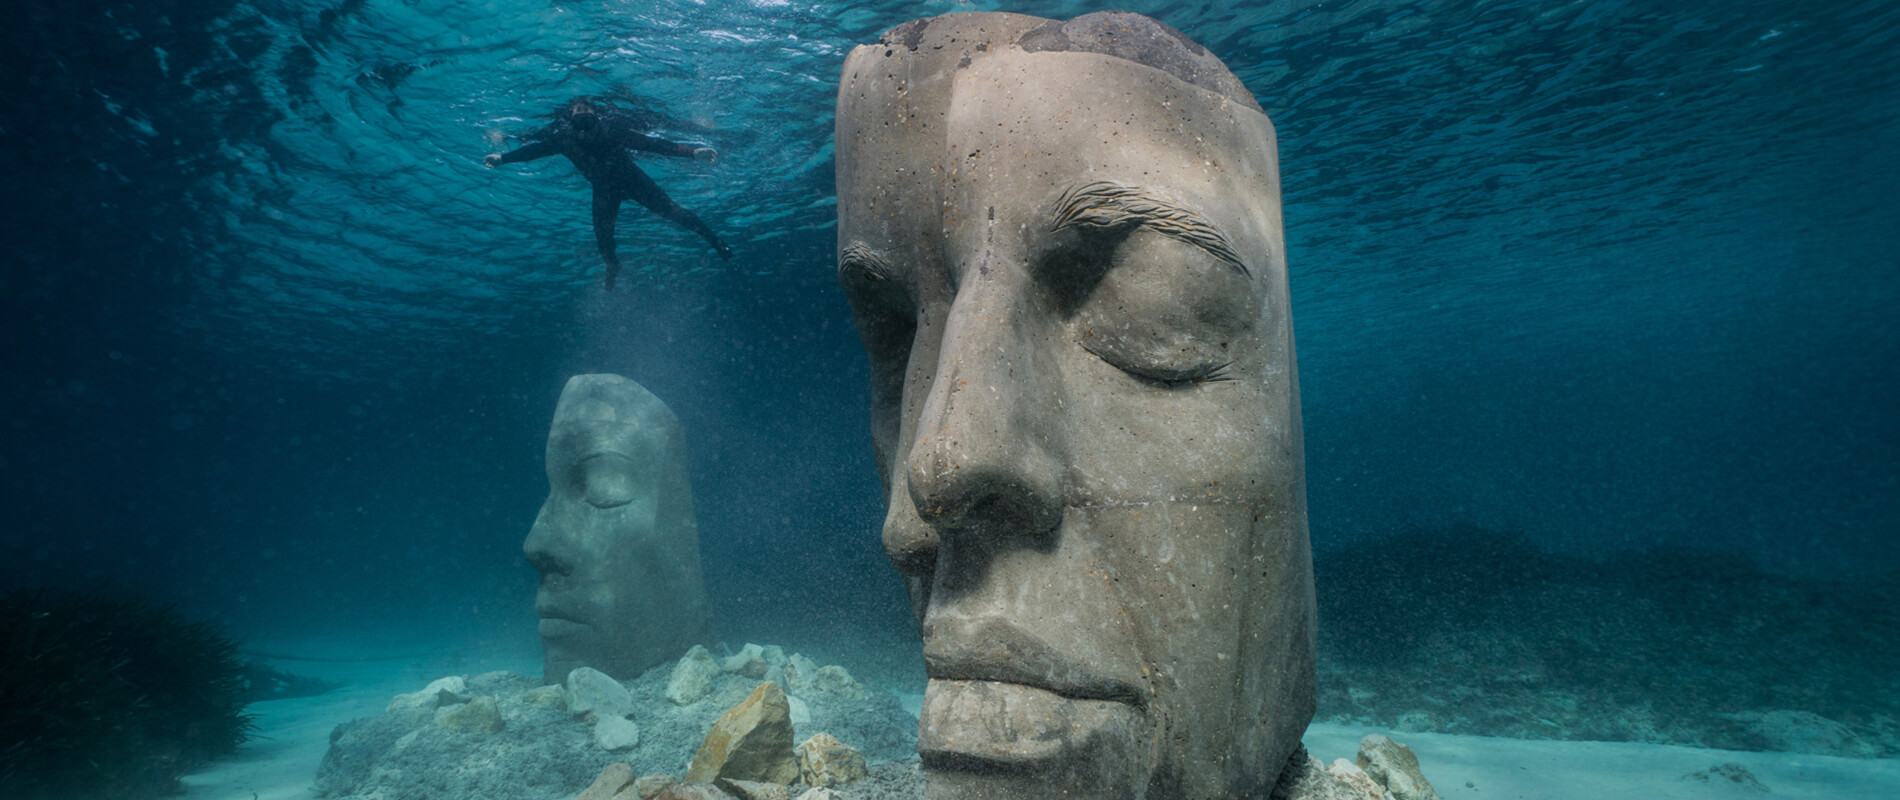 Cannes Underwater Museum, the First Underwater Art Gallery in Europe